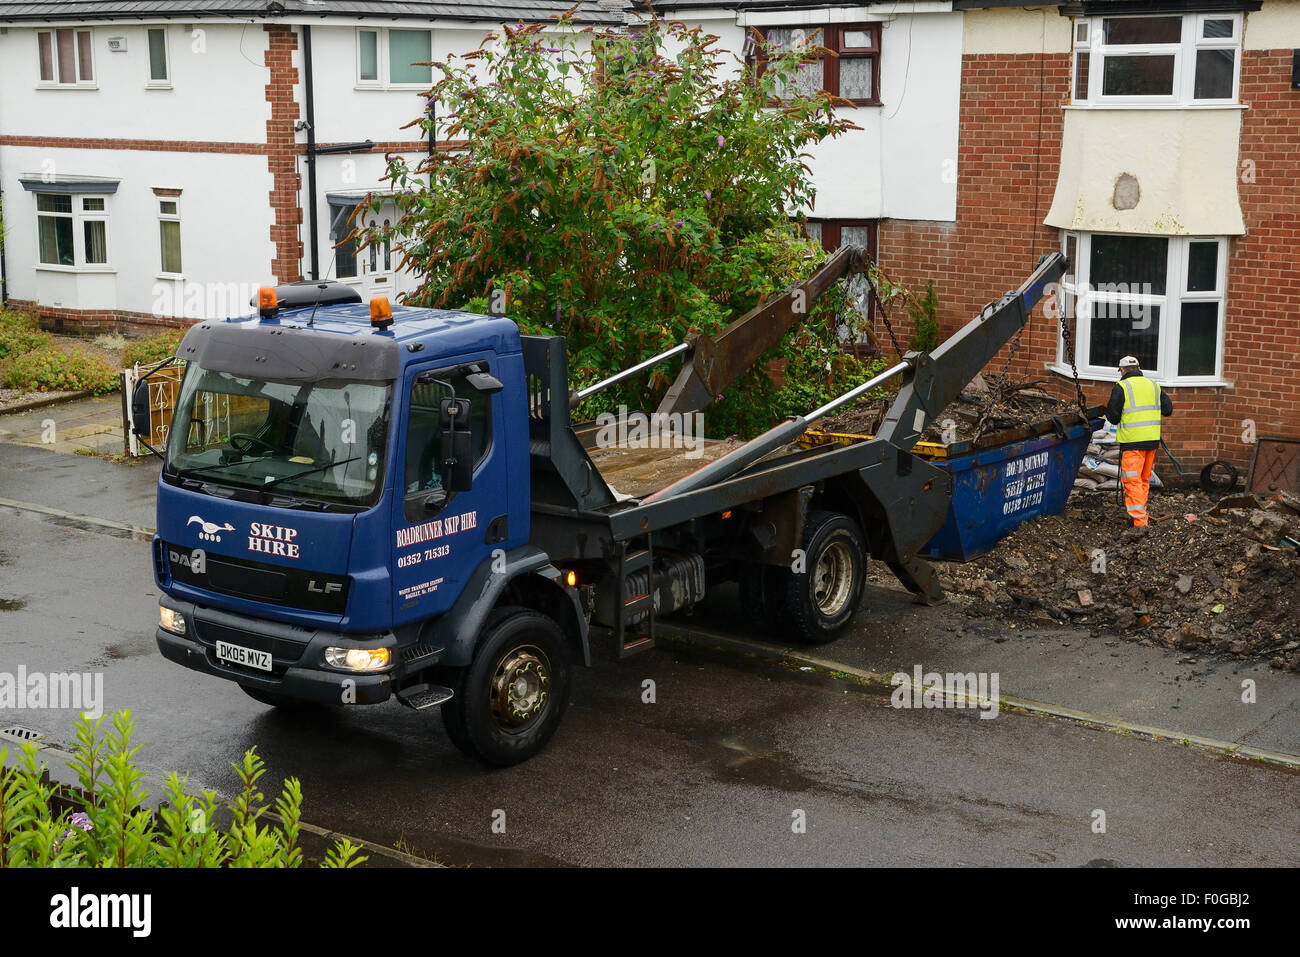 Vehicle collecting a skip from the front garden of a house - Stock Image